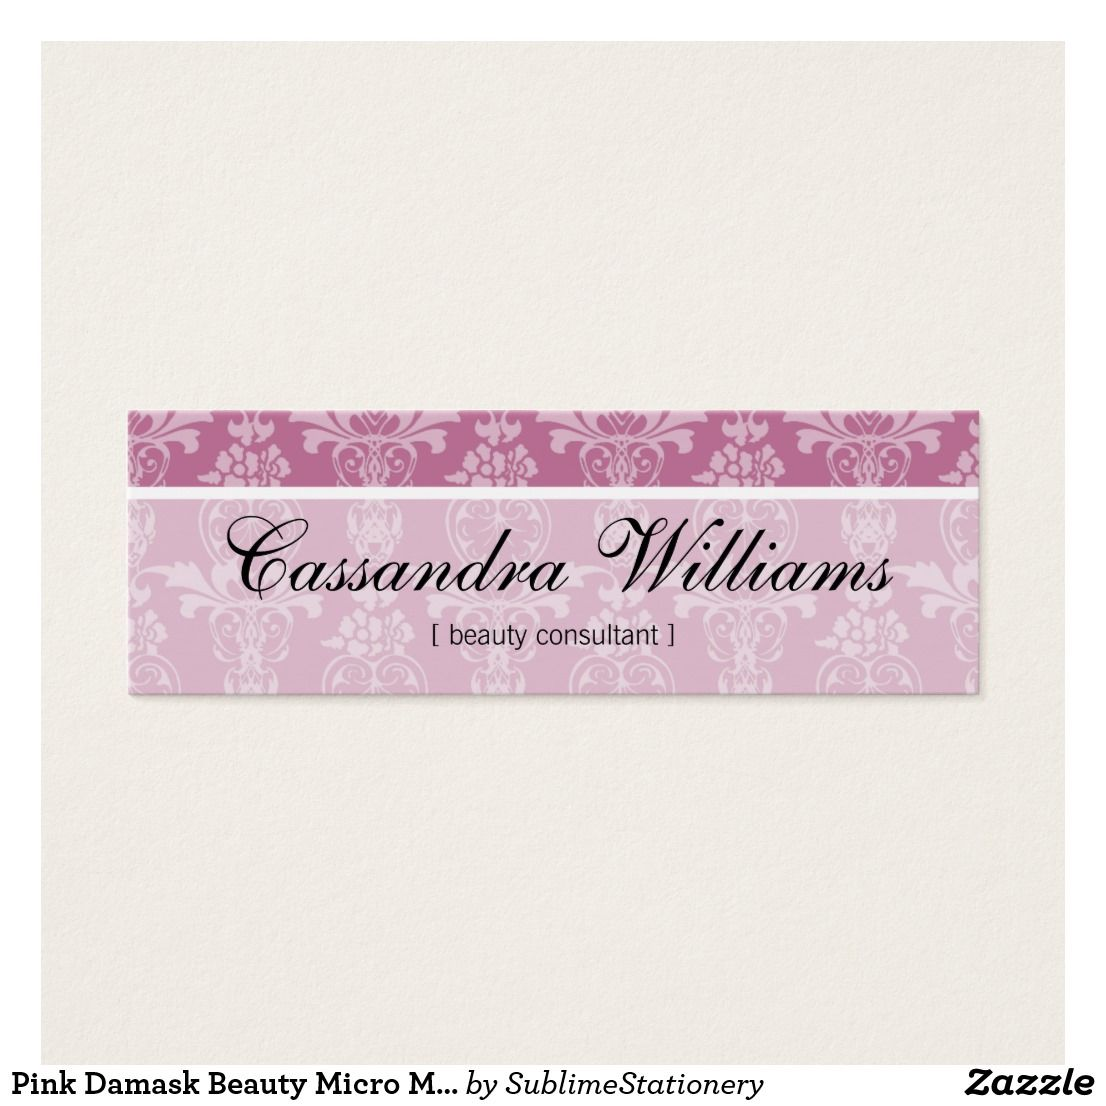 Pink damask beauty micro mini business cards custom business cards pink damask beauty micro mini business cards reheart Gallery